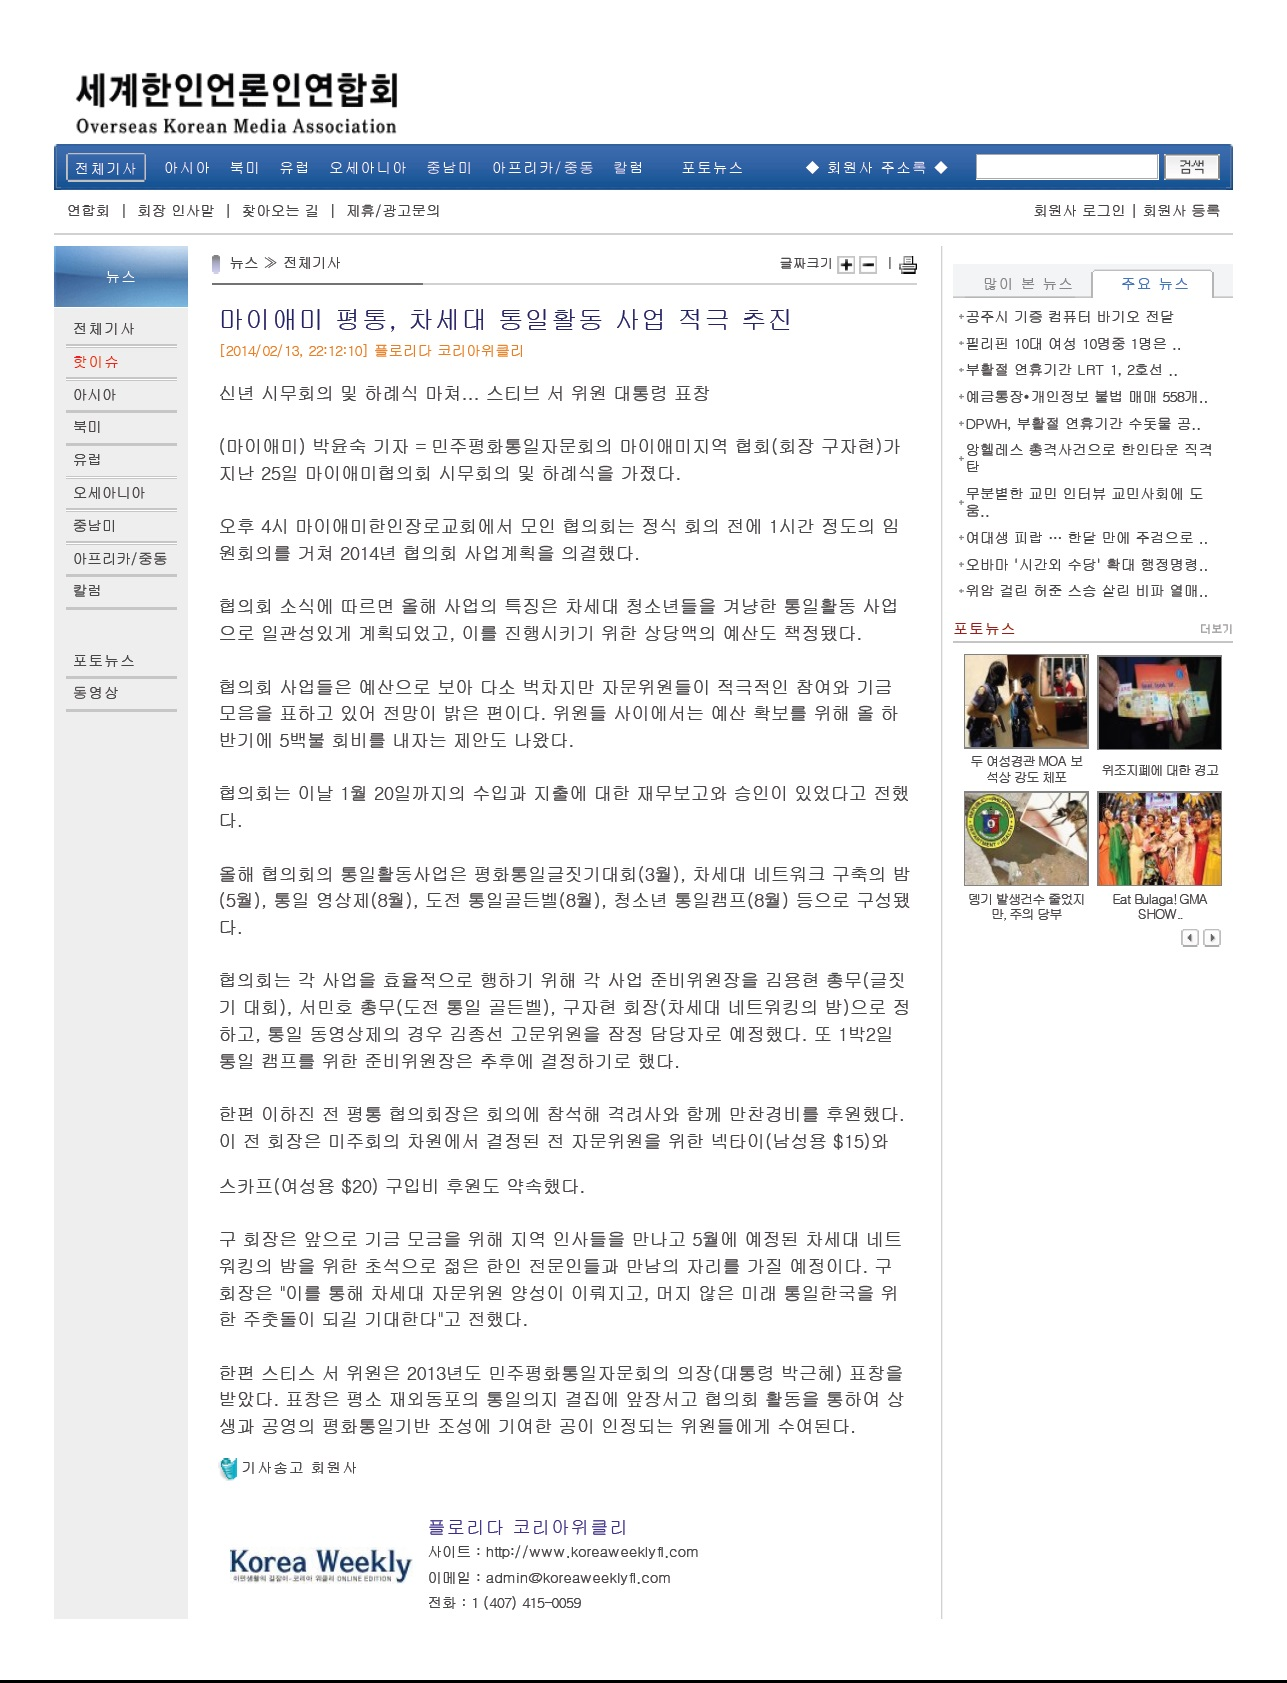 Korea Weekly article.jpg